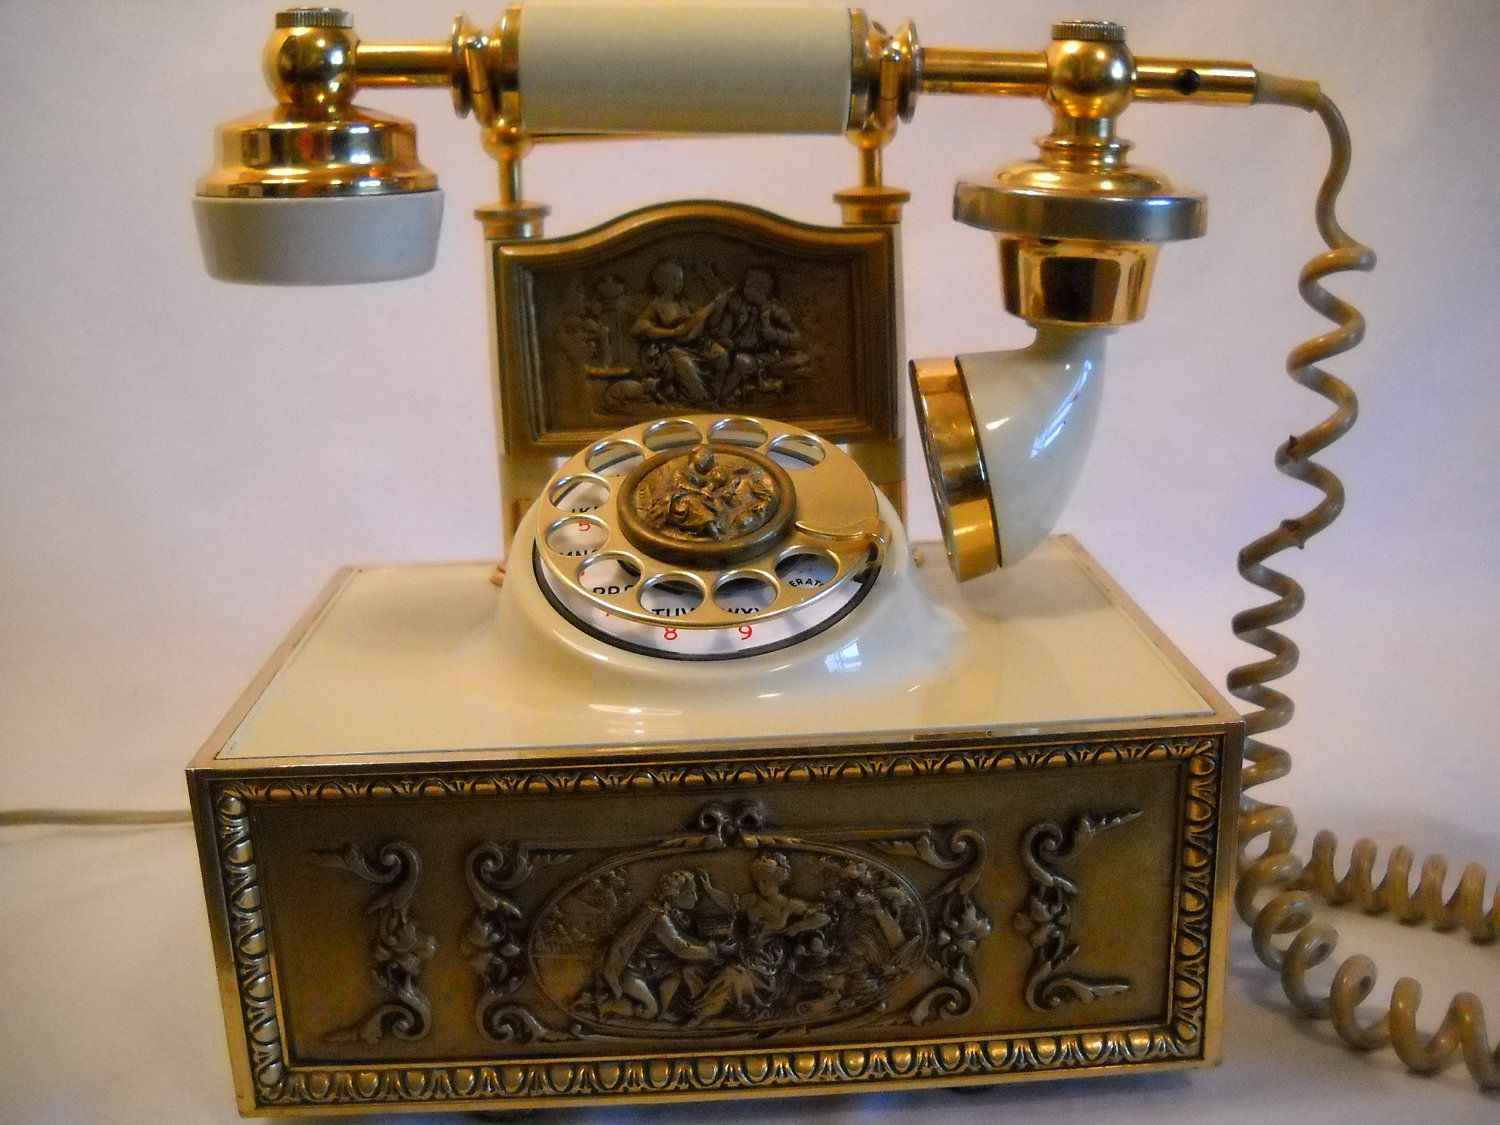 Vintage French Victorian Rotary Phone Vintage Telephone Vintage Phones Victorian